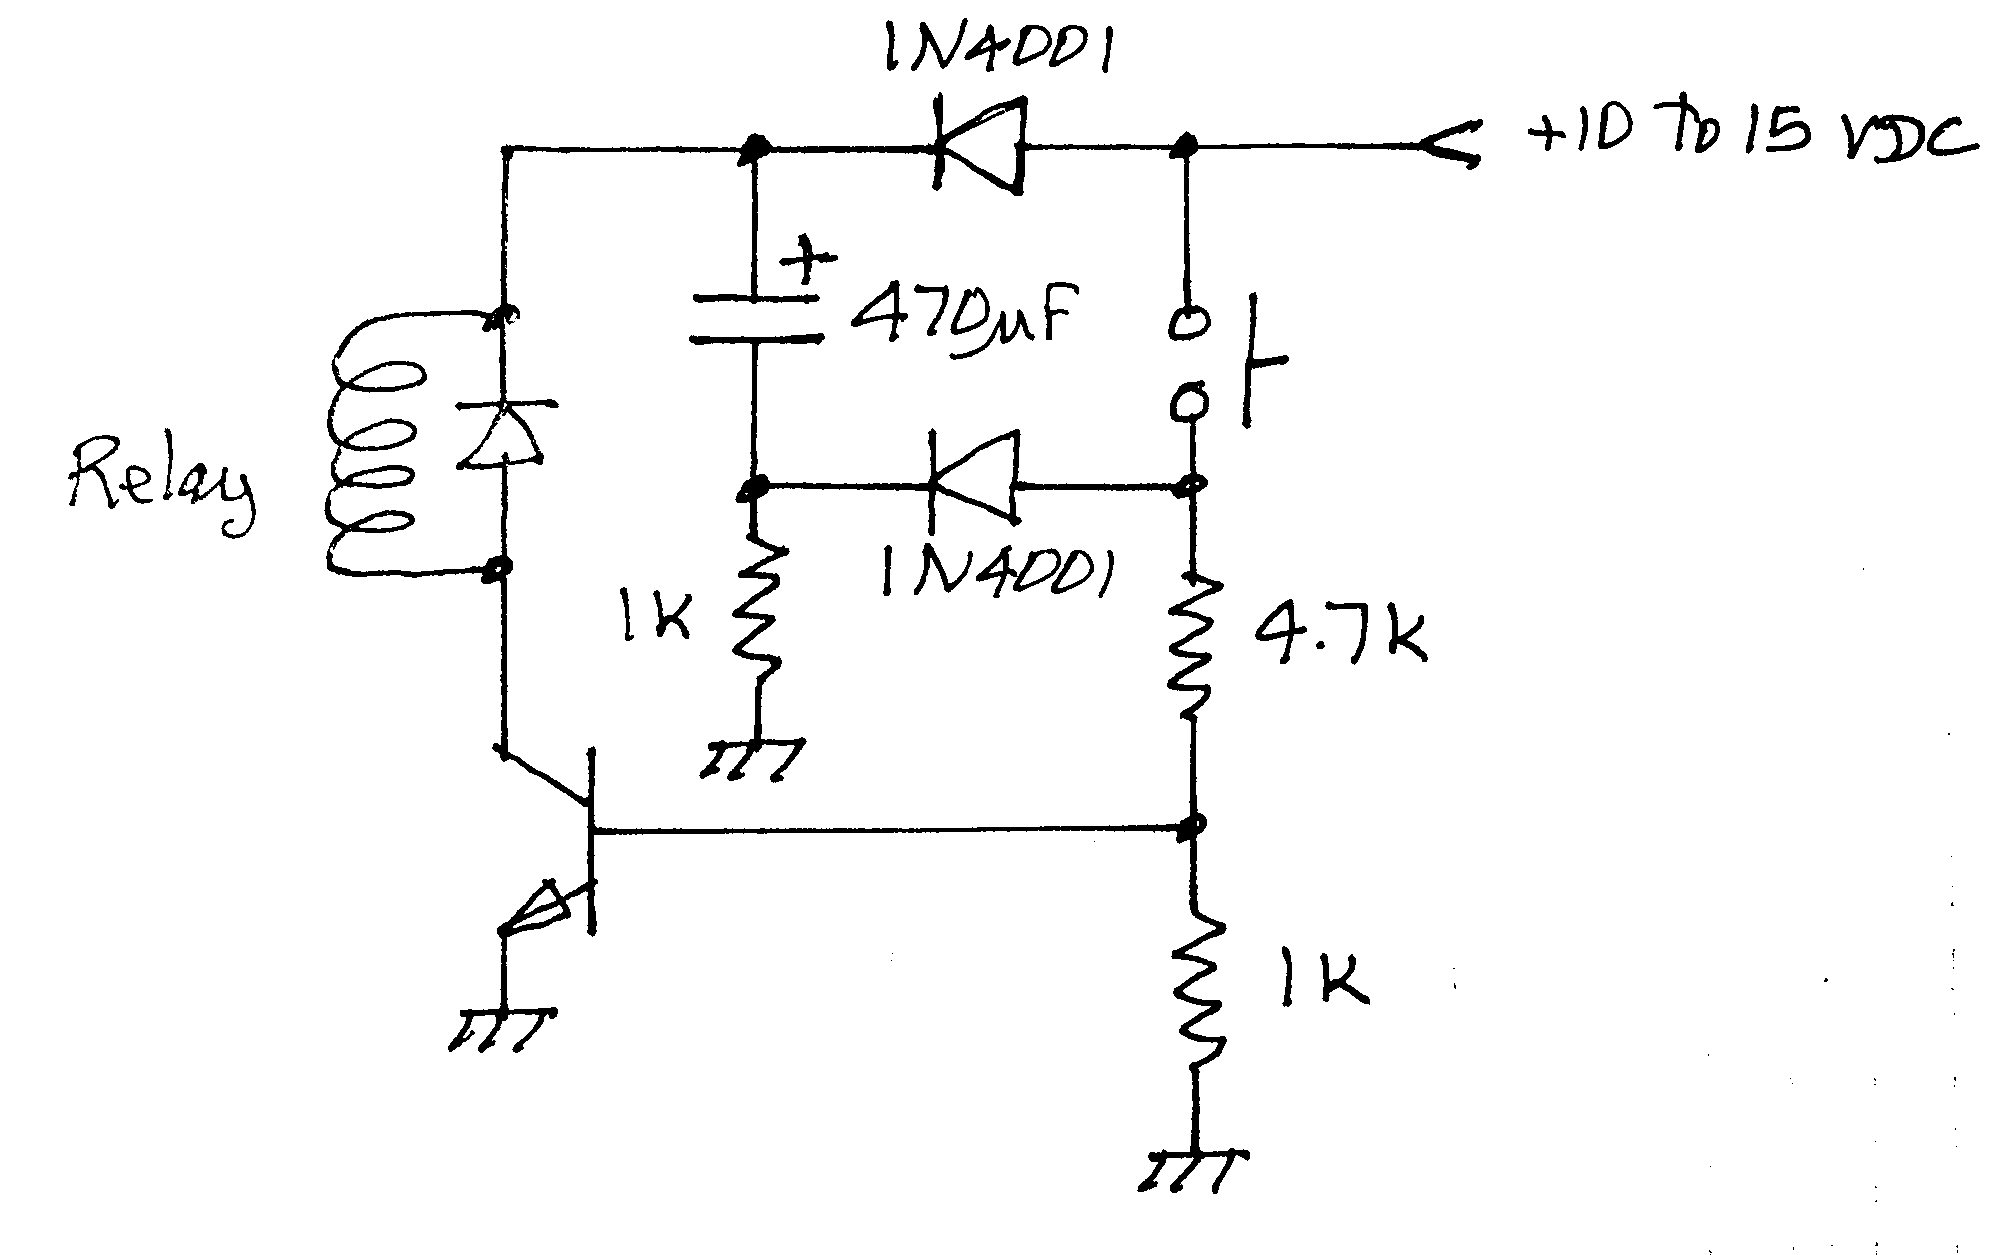 12v Relay Diagram Circuit : 25 Wiring Diagram Images